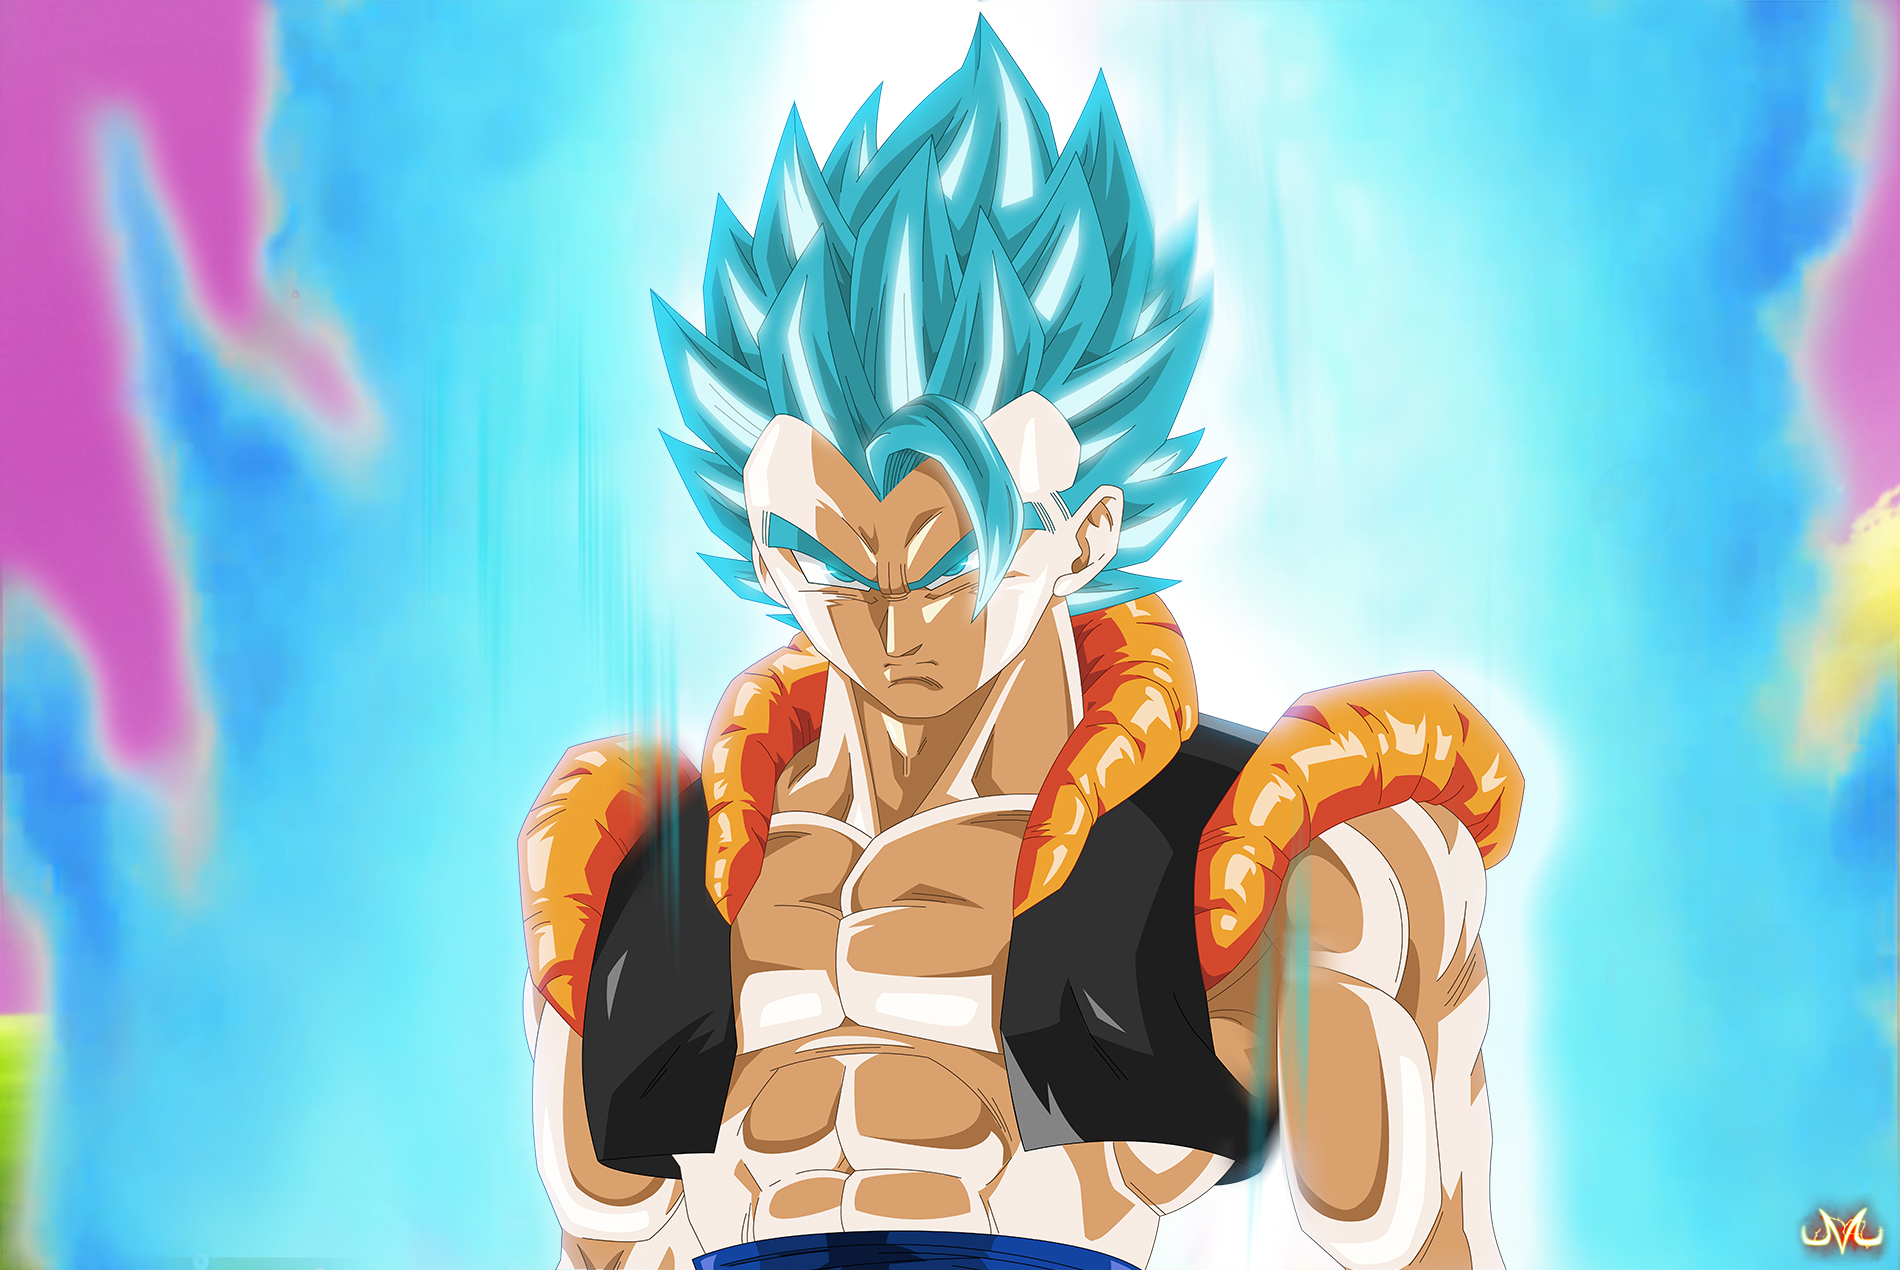 Gogeta Dragon Ball Wallpaper 2189117 Zerochan Anime Image Board